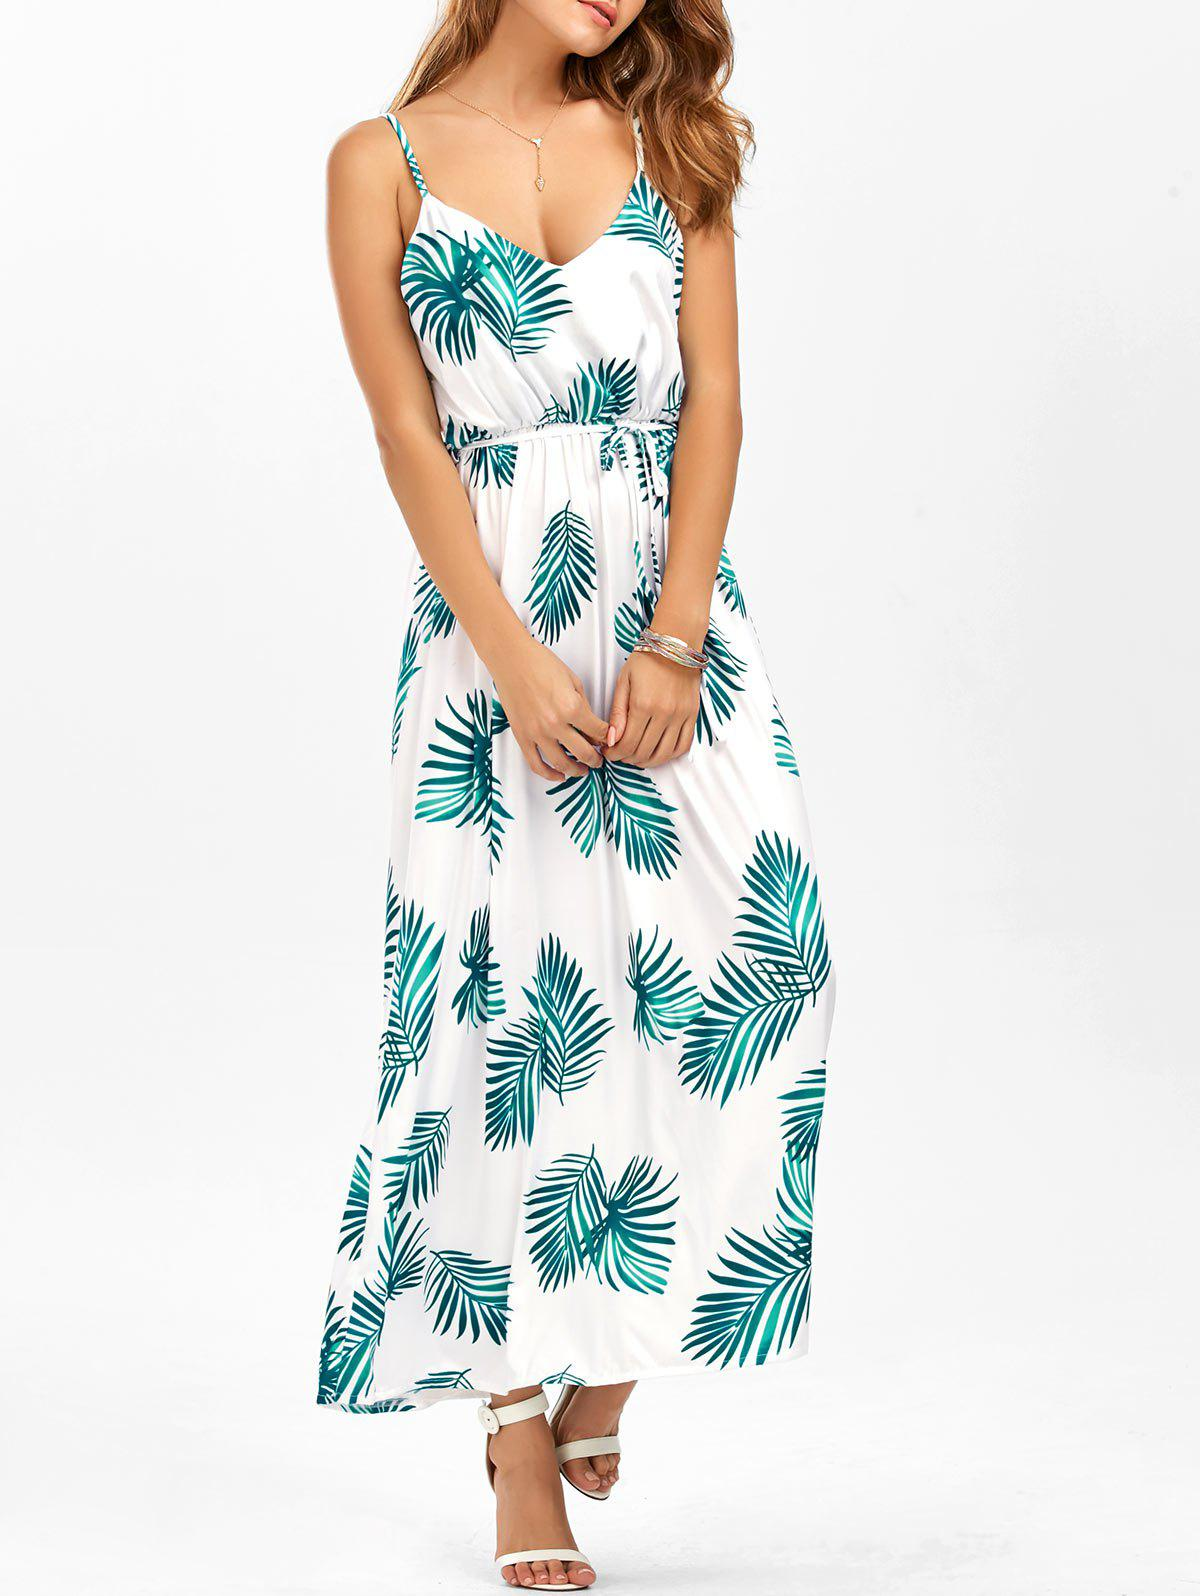 New Leaf Print Cut Out Belted Cami Dress